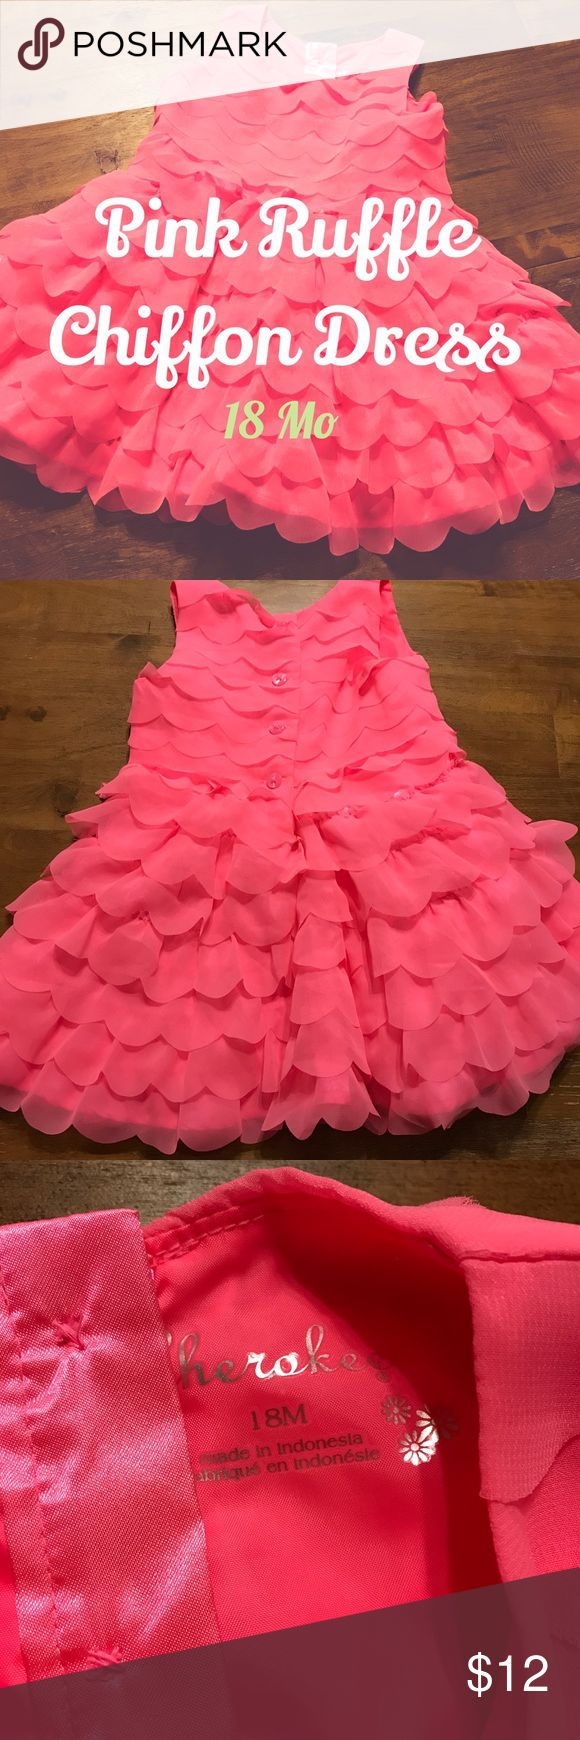 Cherokee pink chiffon dress 18 months Ruffled chiffon in bright pink. Button closure on back. Target Cherokee brand. Size 18 Months Cherokee Dresses Formal